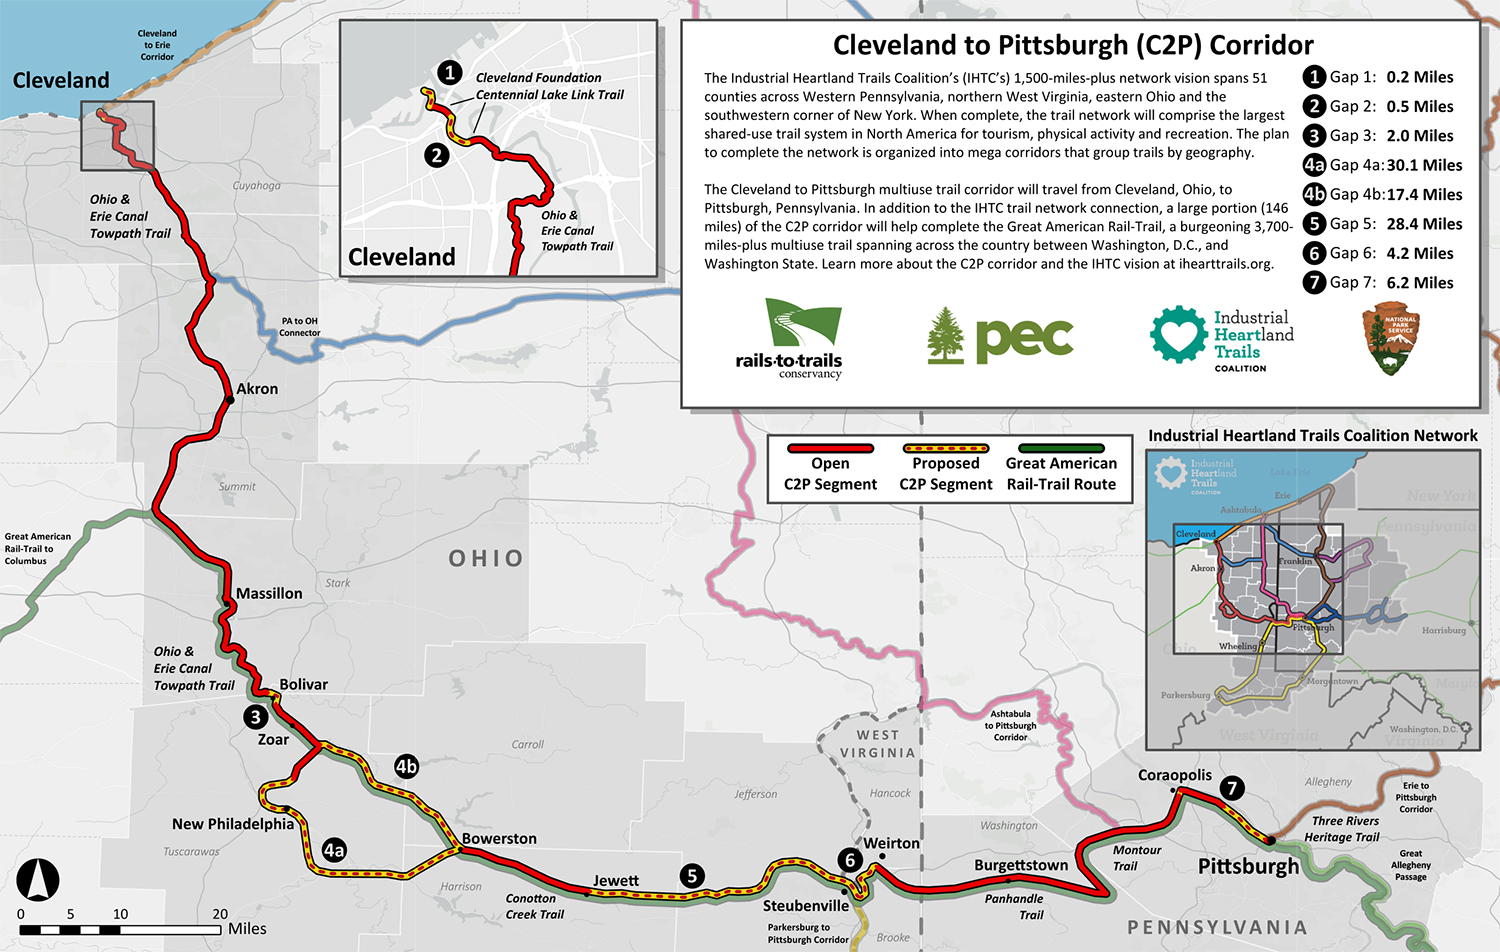 Cleveland to Pittsburgh (C2P) Corridor map